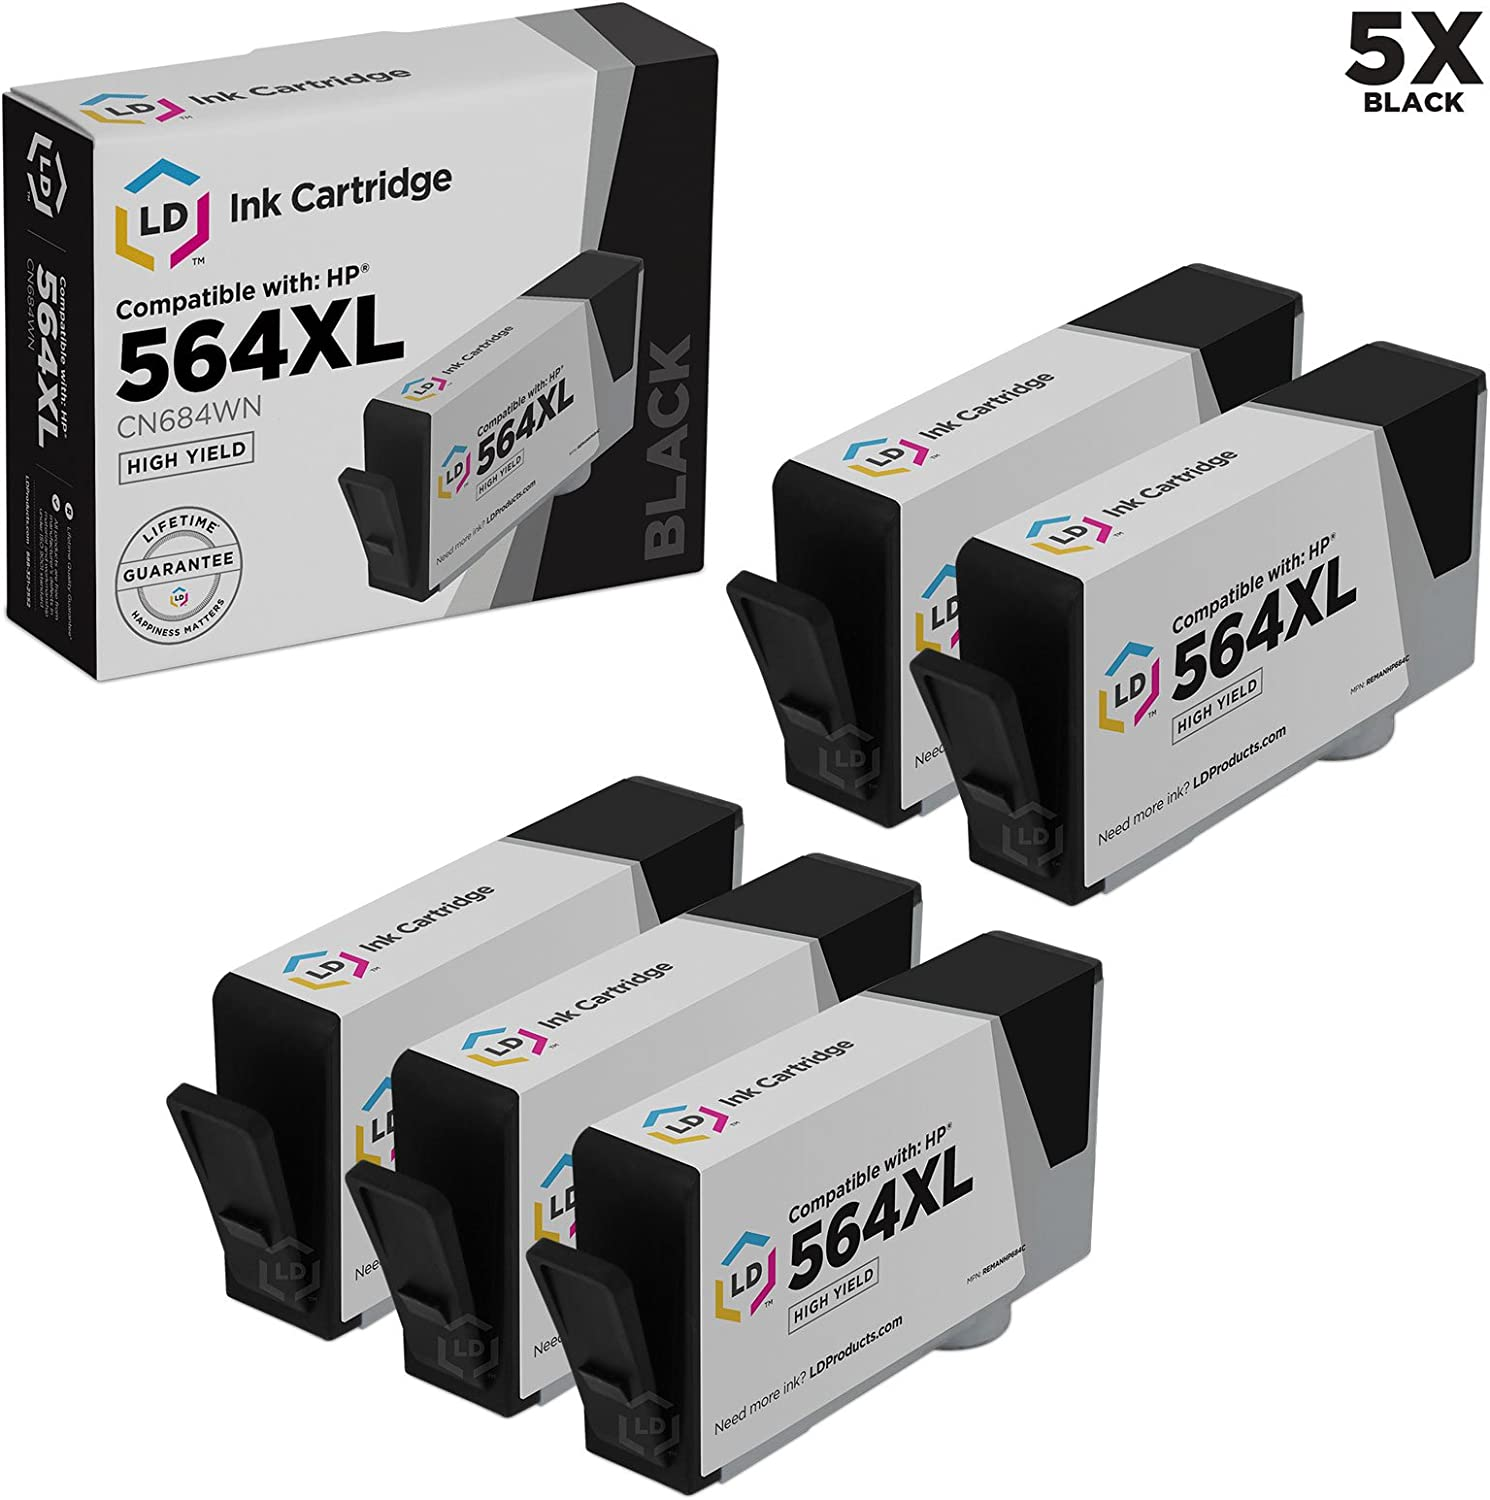 LD Remanufactured Ink Cartridge Replacement for HP 564XL CN684WN High Yield (Black, 5-Pack)